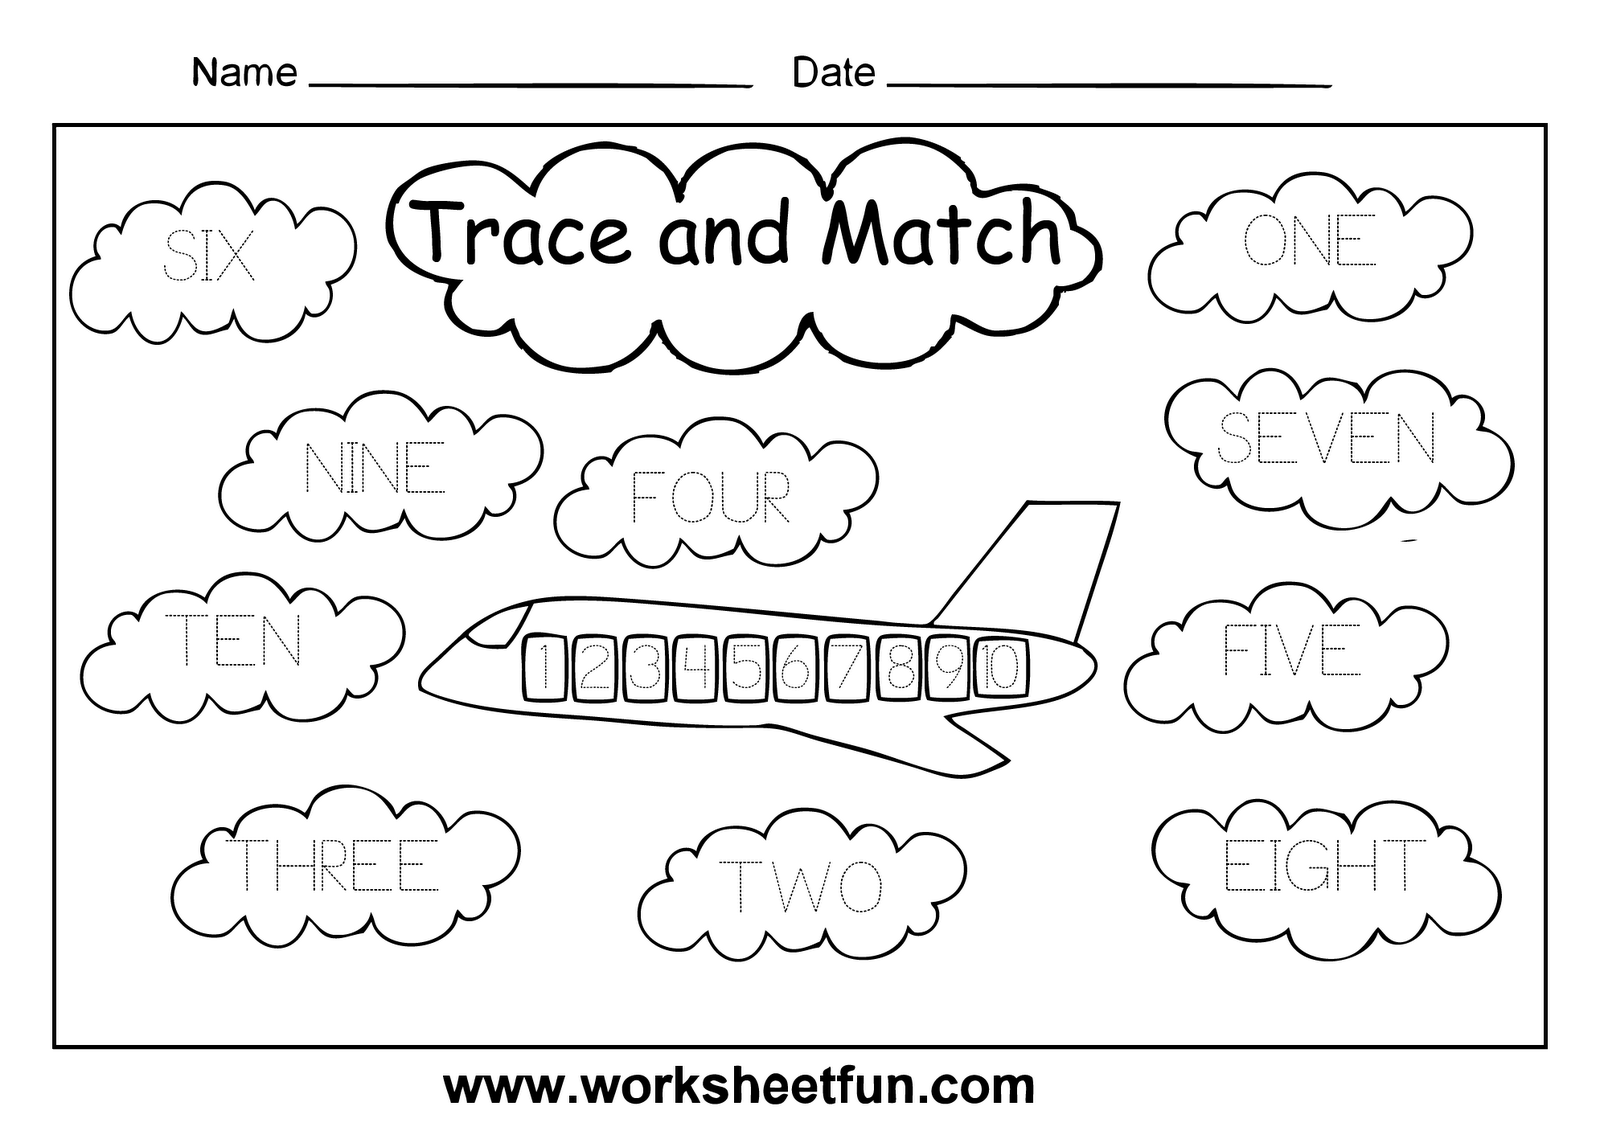 Weirdmailus  Outstanding Worksheet Numbers    Reocurent With Magnificent Farm Worksheet Besides Mixed Problems Worksheet Furthermore Th Grade Language Arts Printable Worksheets With Appealing Miller And Levine Biology Worksheets Also Preschool Letter F Worksheets In Addition Ratio And Proportions Worksheet And Graph Interpretation Worksheet As Well As Math Extra Credit Worksheet Additionally Converting Worksheets From Reocurentcom With Weirdmailus  Magnificent Worksheet Numbers    Reocurent With Appealing Farm Worksheet Besides Mixed Problems Worksheet Furthermore Th Grade Language Arts Printable Worksheets And Outstanding Miller And Levine Biology Worksheets Also Preschool Letter F Worksheets In Addition Ratio And Proportions Worksheet From Reocurentcom